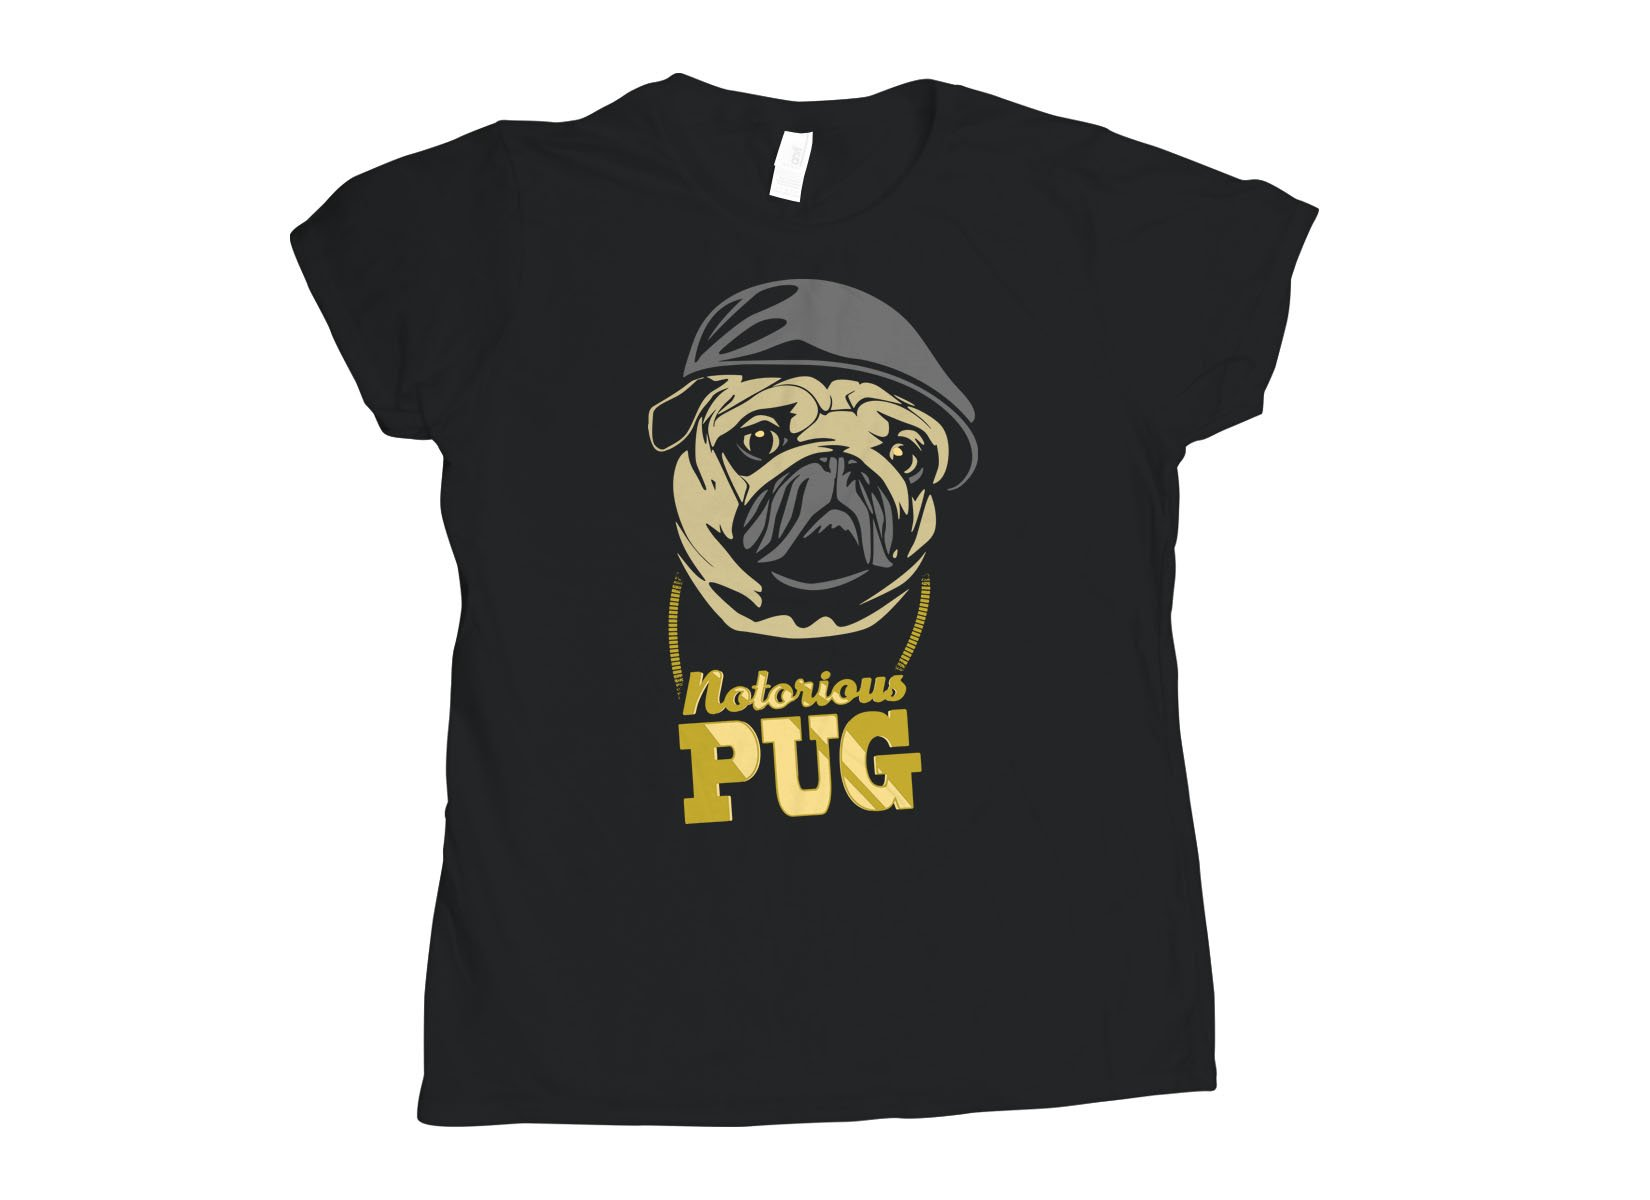 Notorious PUG on Womens T-Shirt